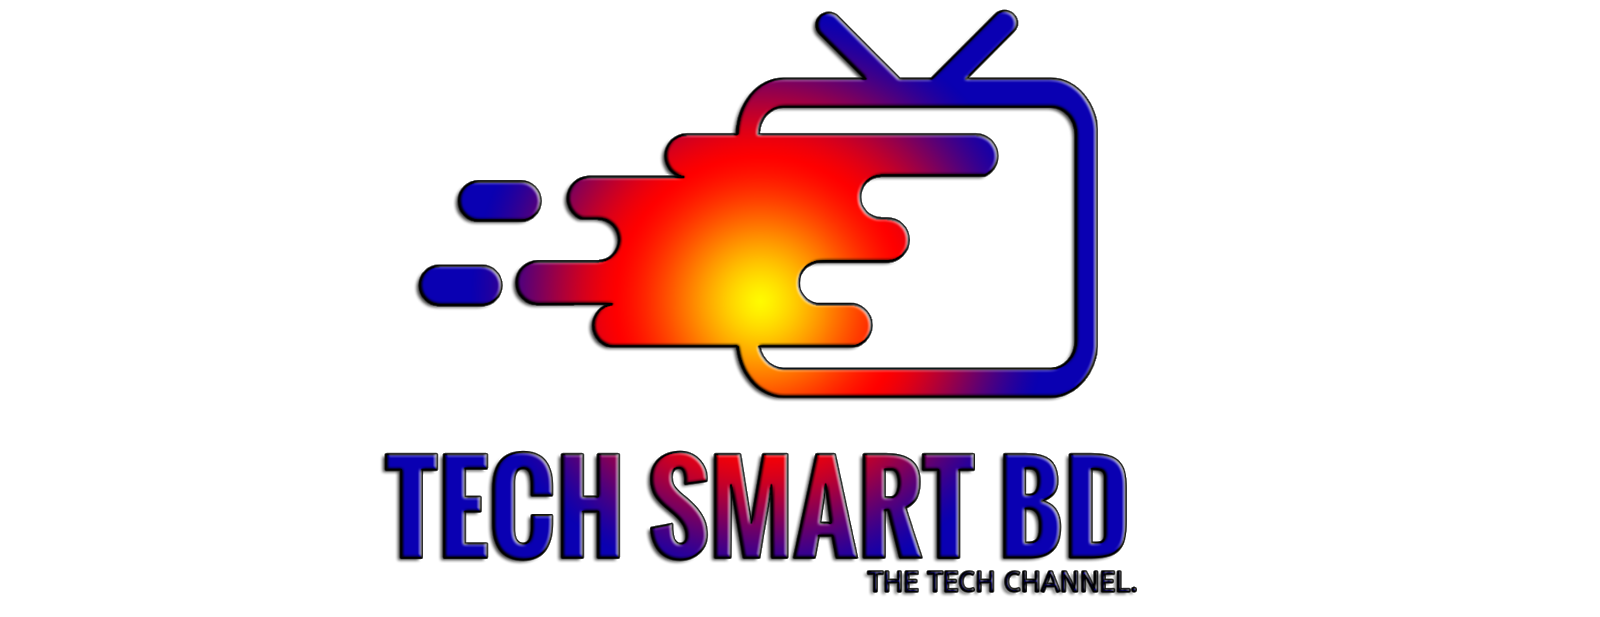 Tech Smart BD - A Technology Channel